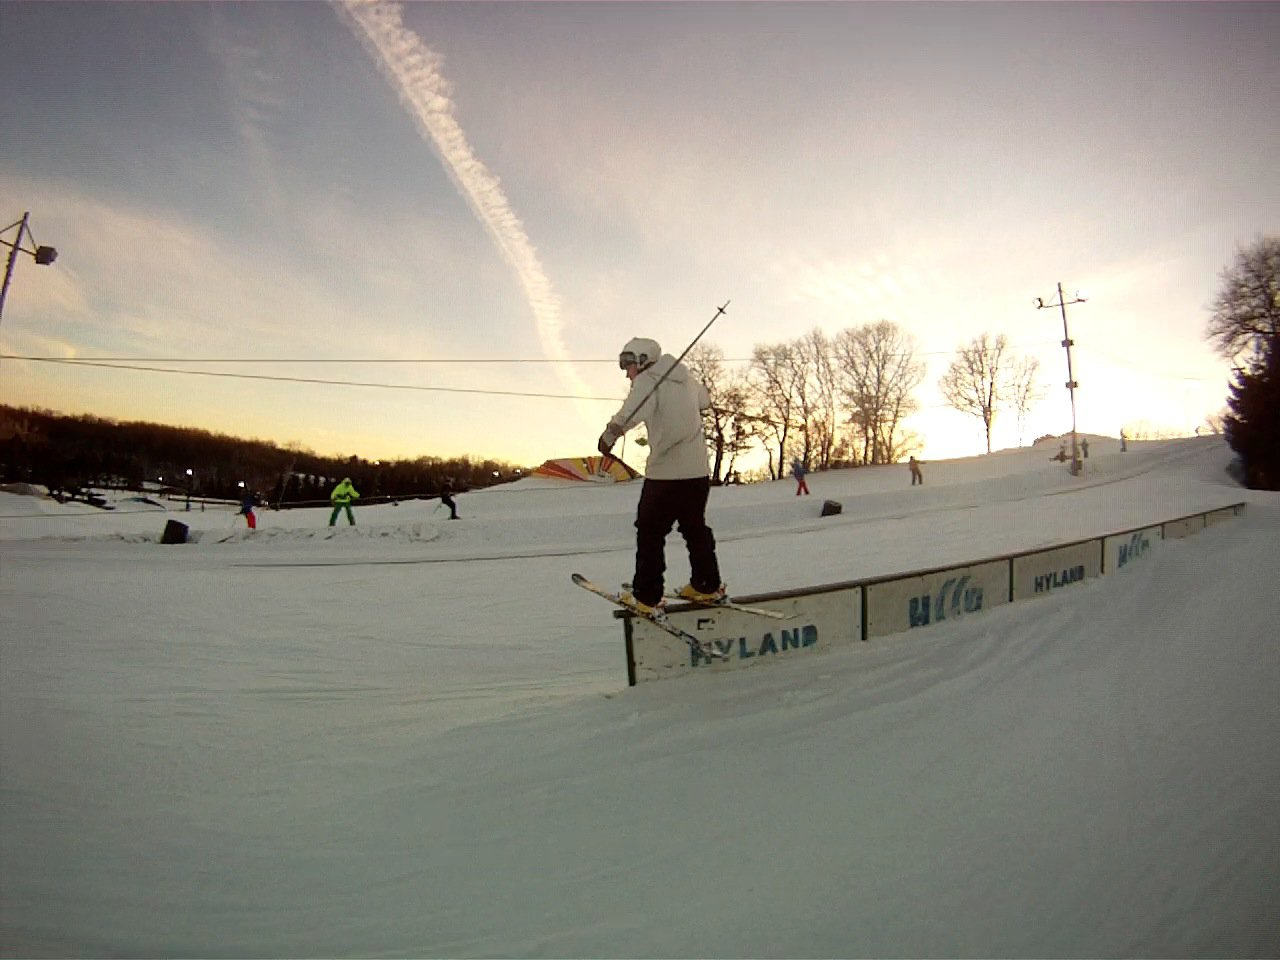 picture from hyland